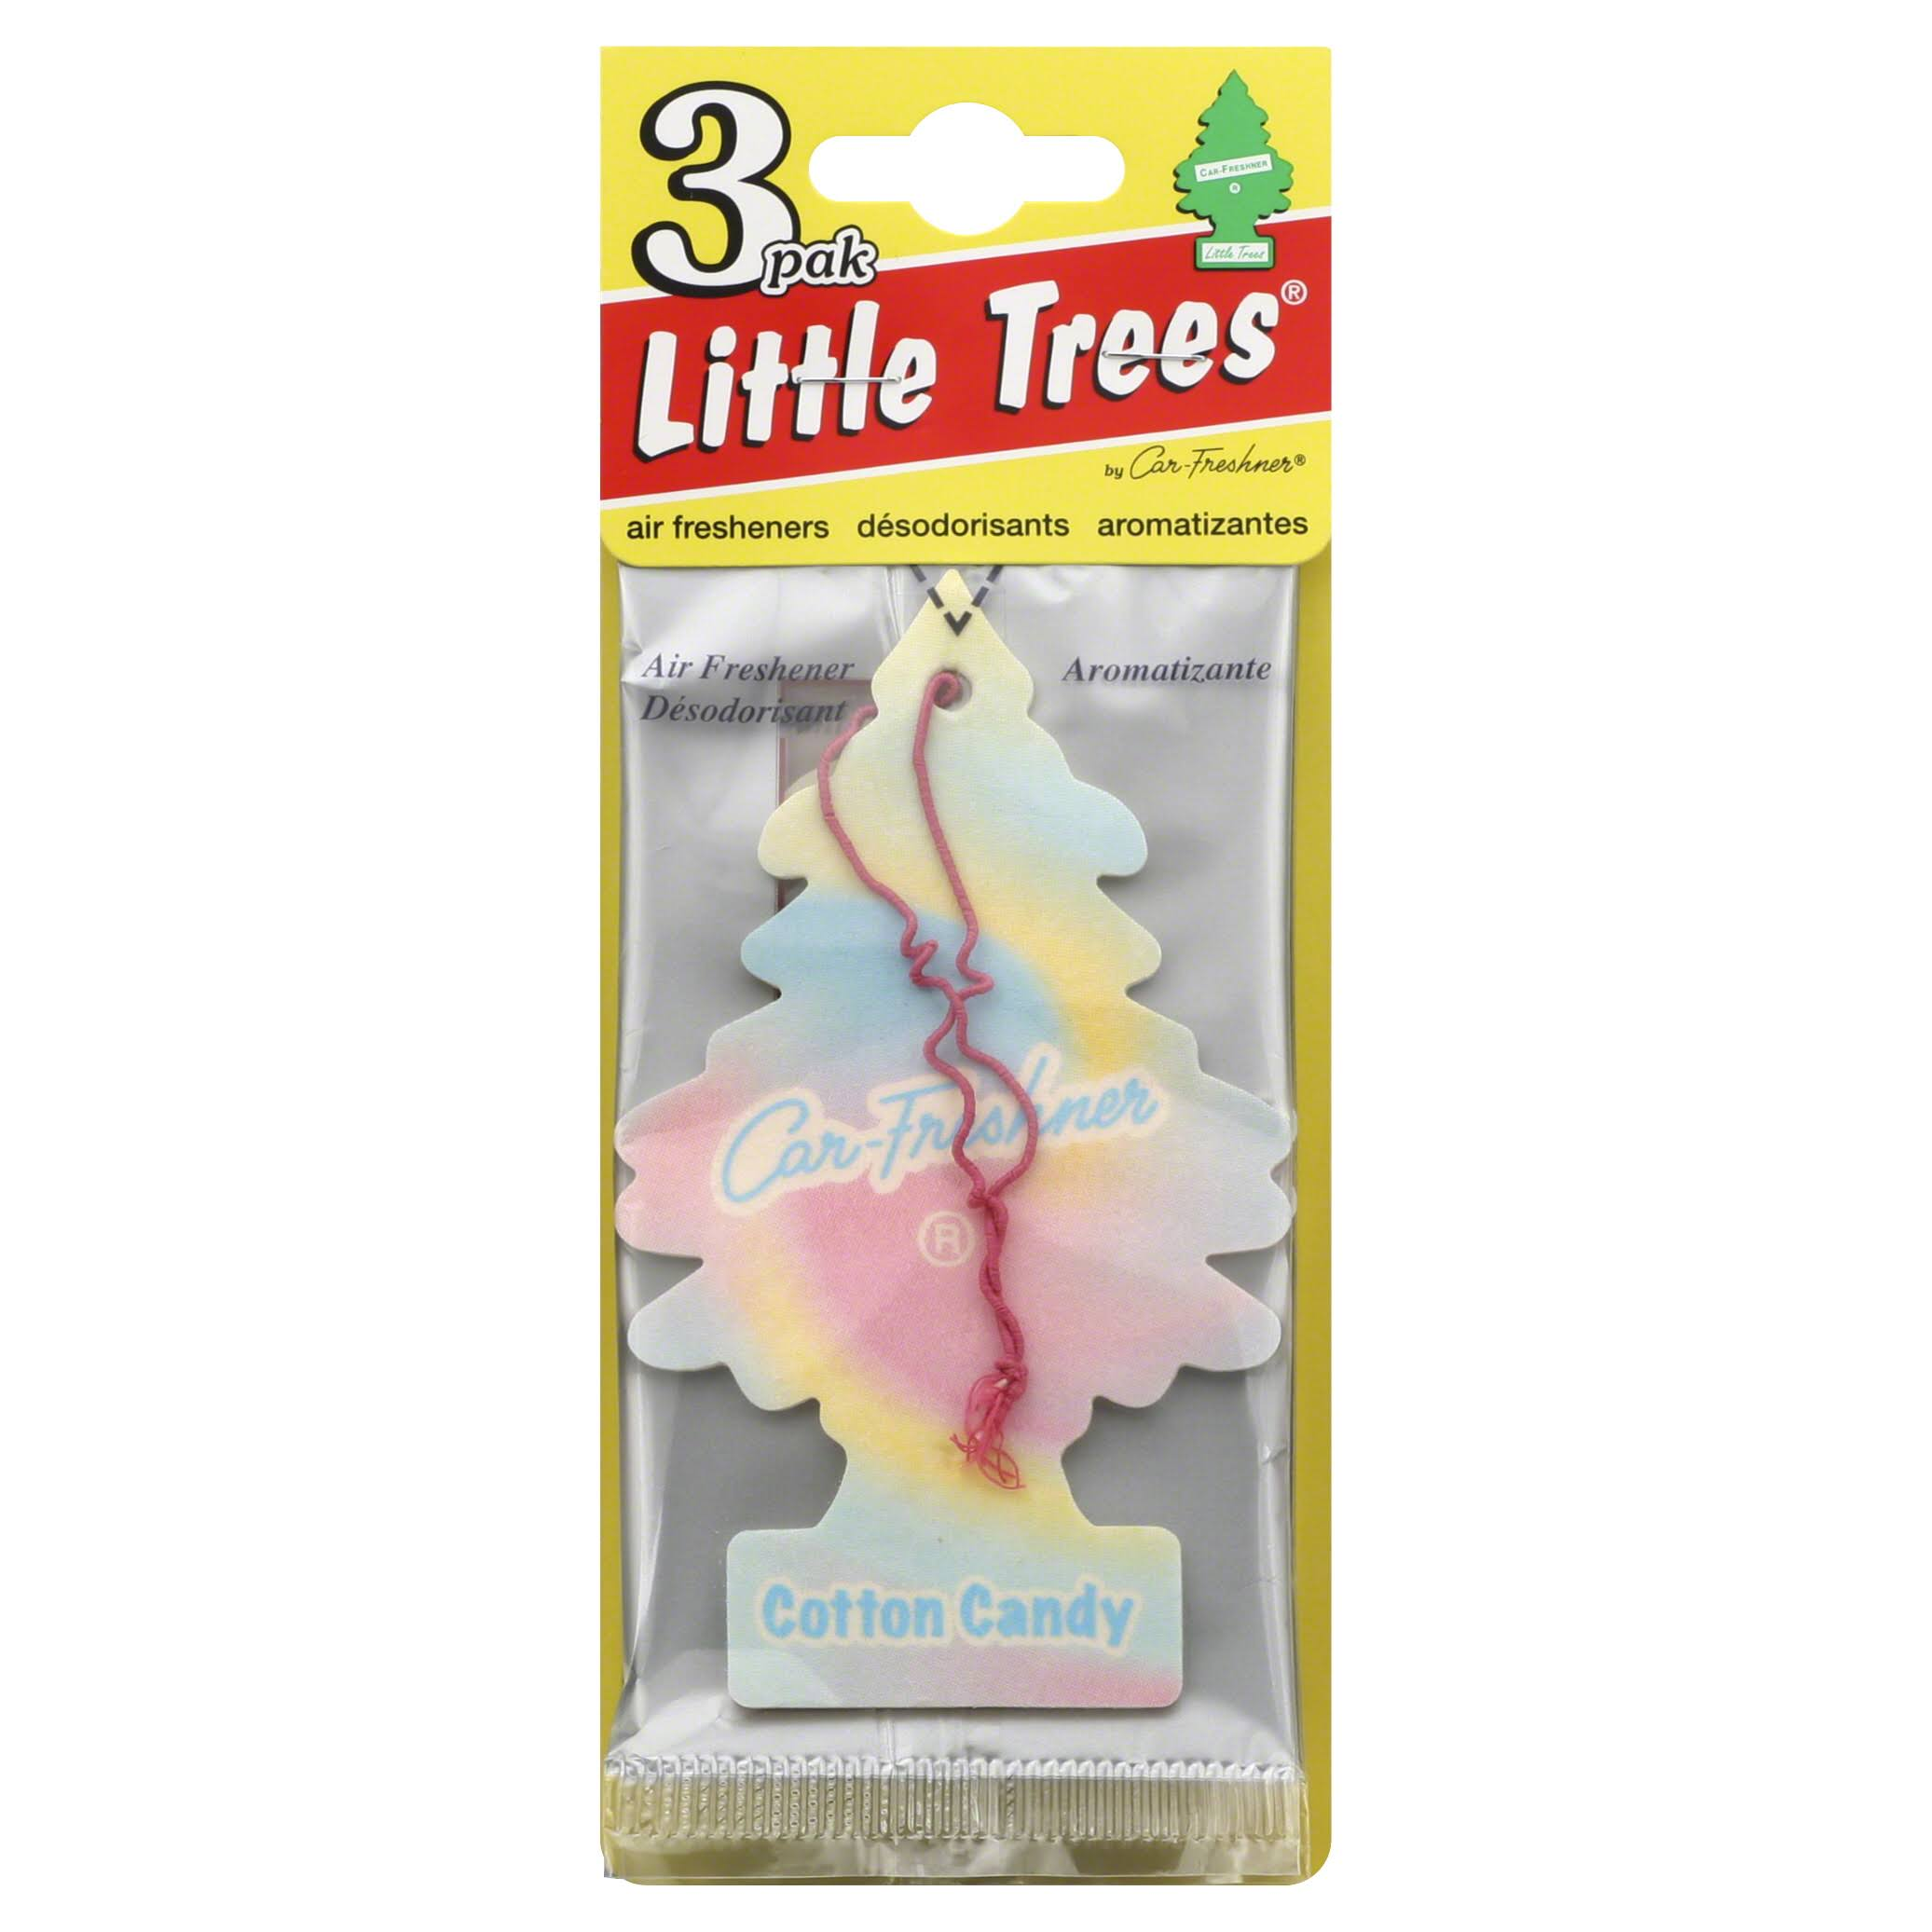 Little Trees Air Fresheners, Cotton Candy - 3 air freshener